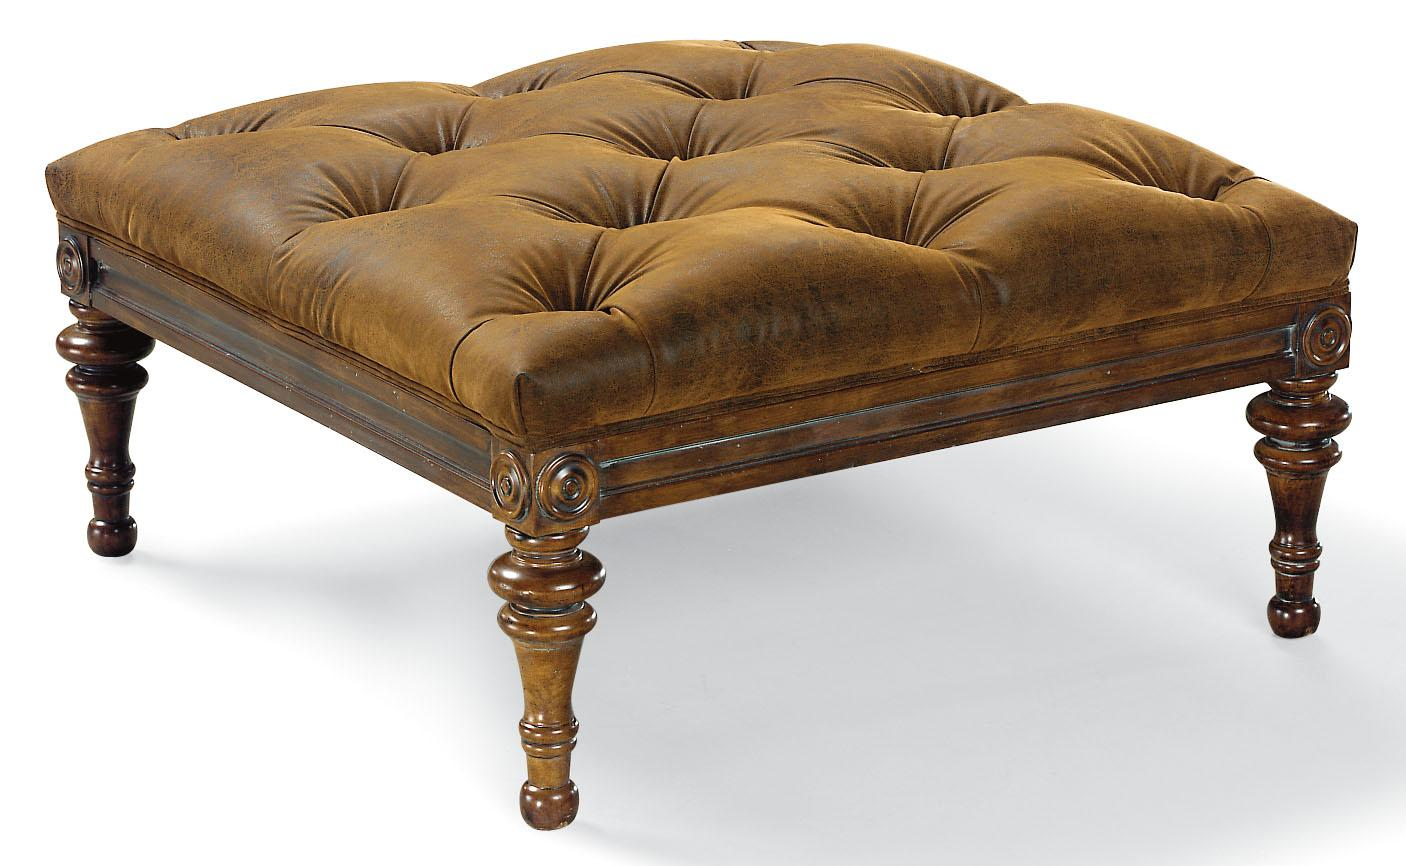 Fairfield Ottomans Cocktail Ottoman - Item Number: 1651-20